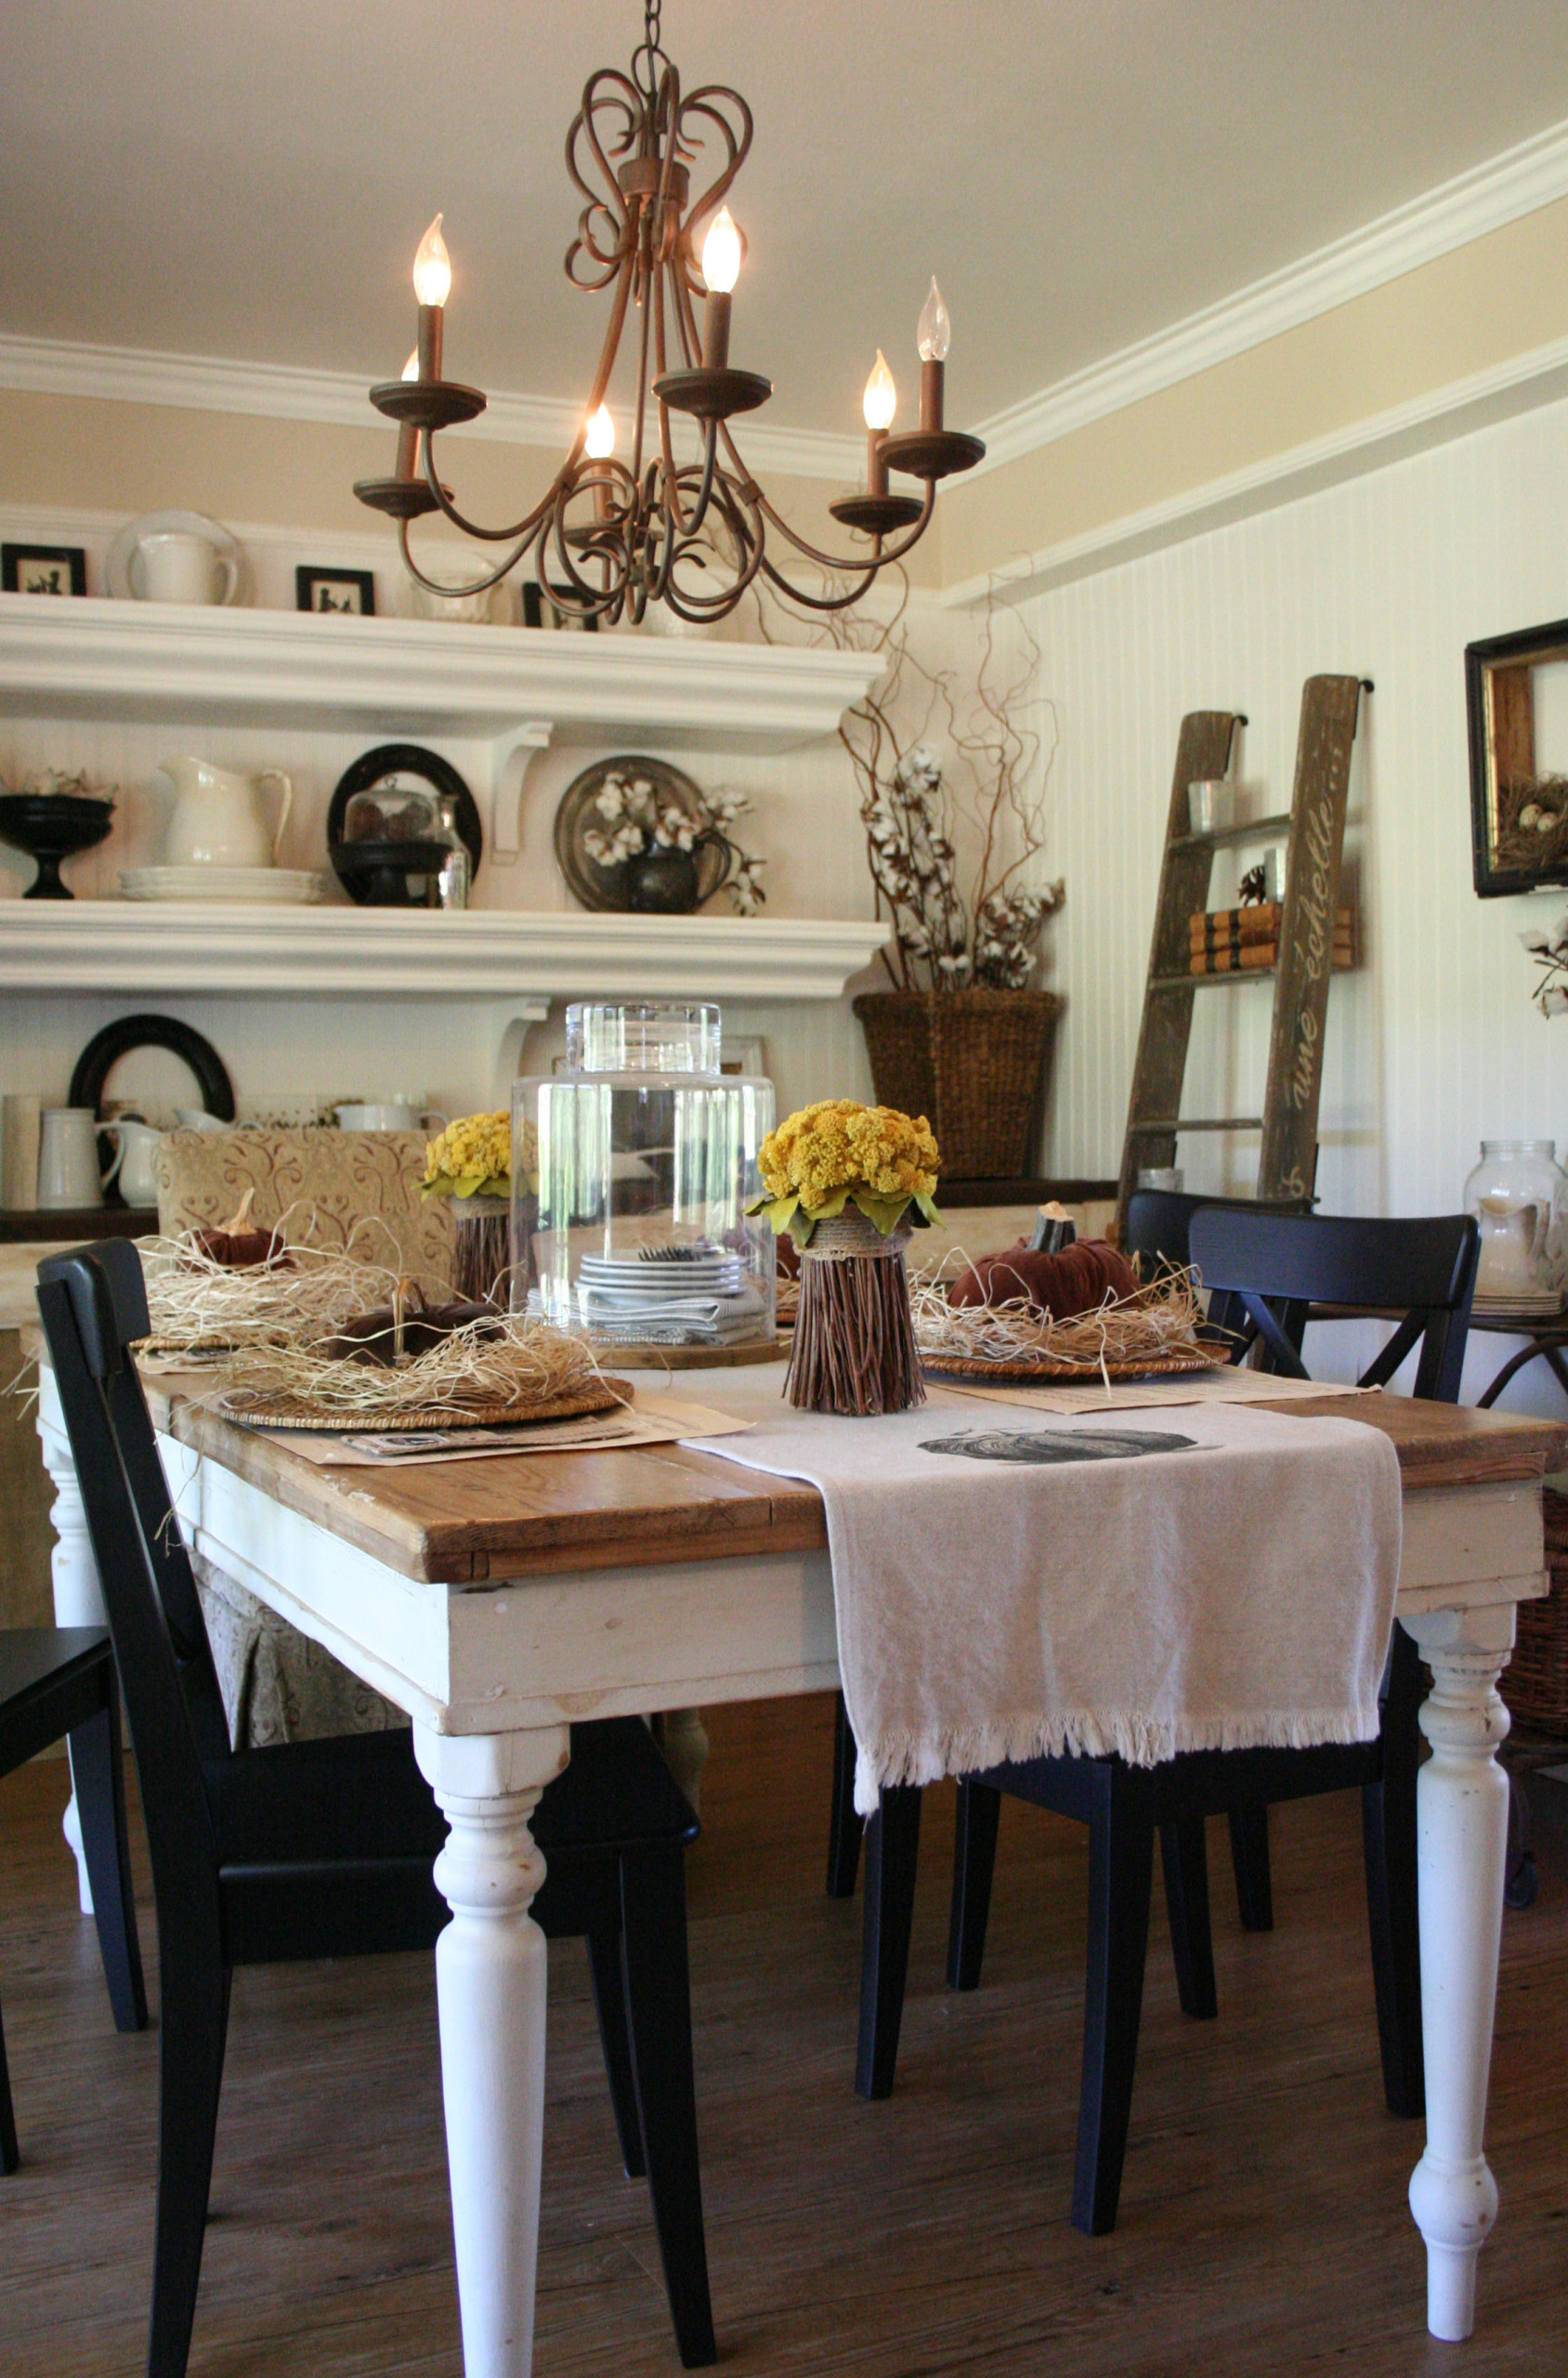 Dining Space Decorated for Fall